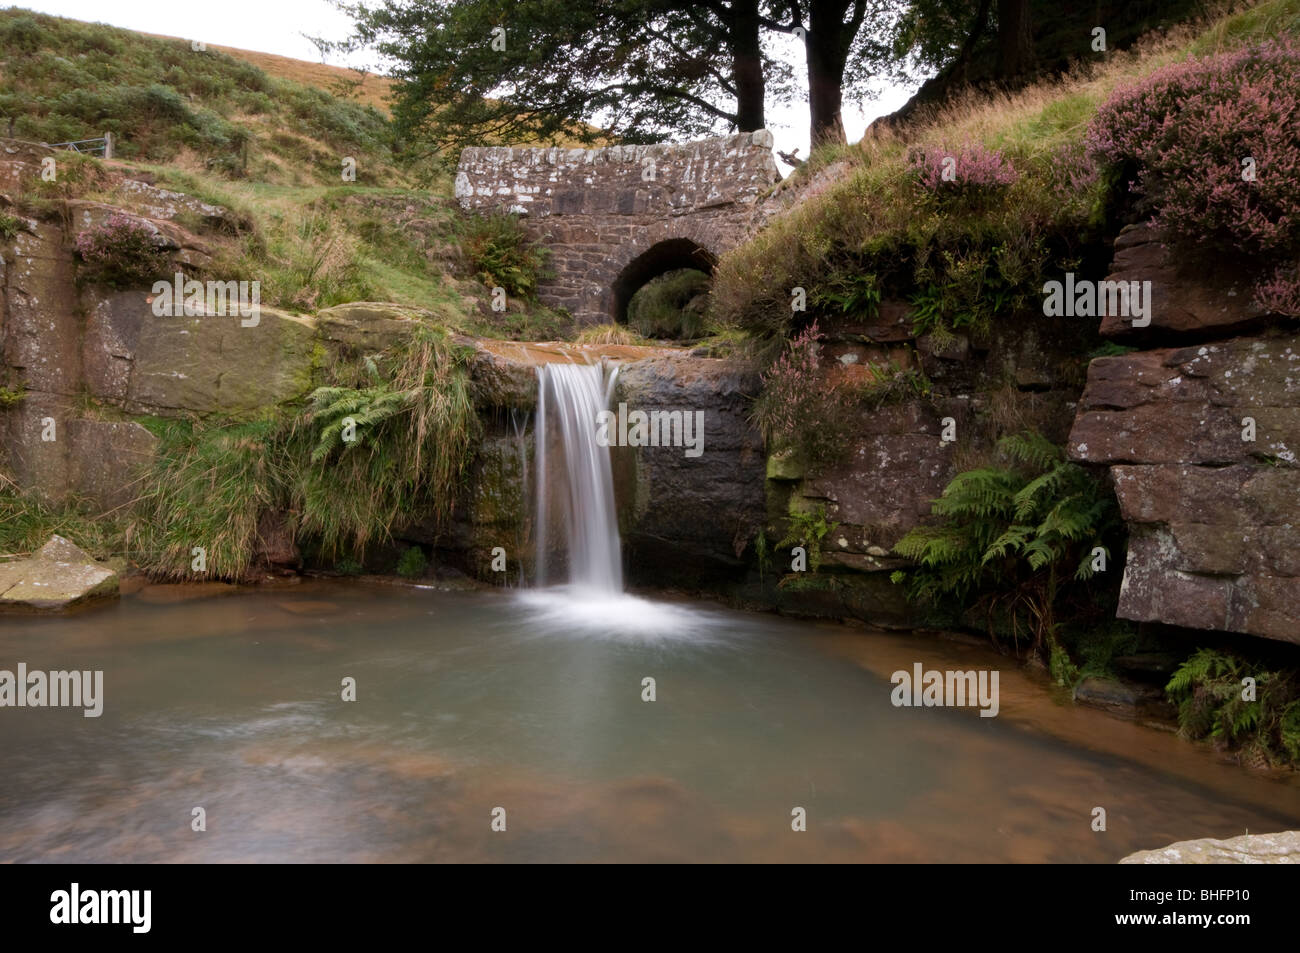 Waterfall at Three Shire's Head - - Stock Image